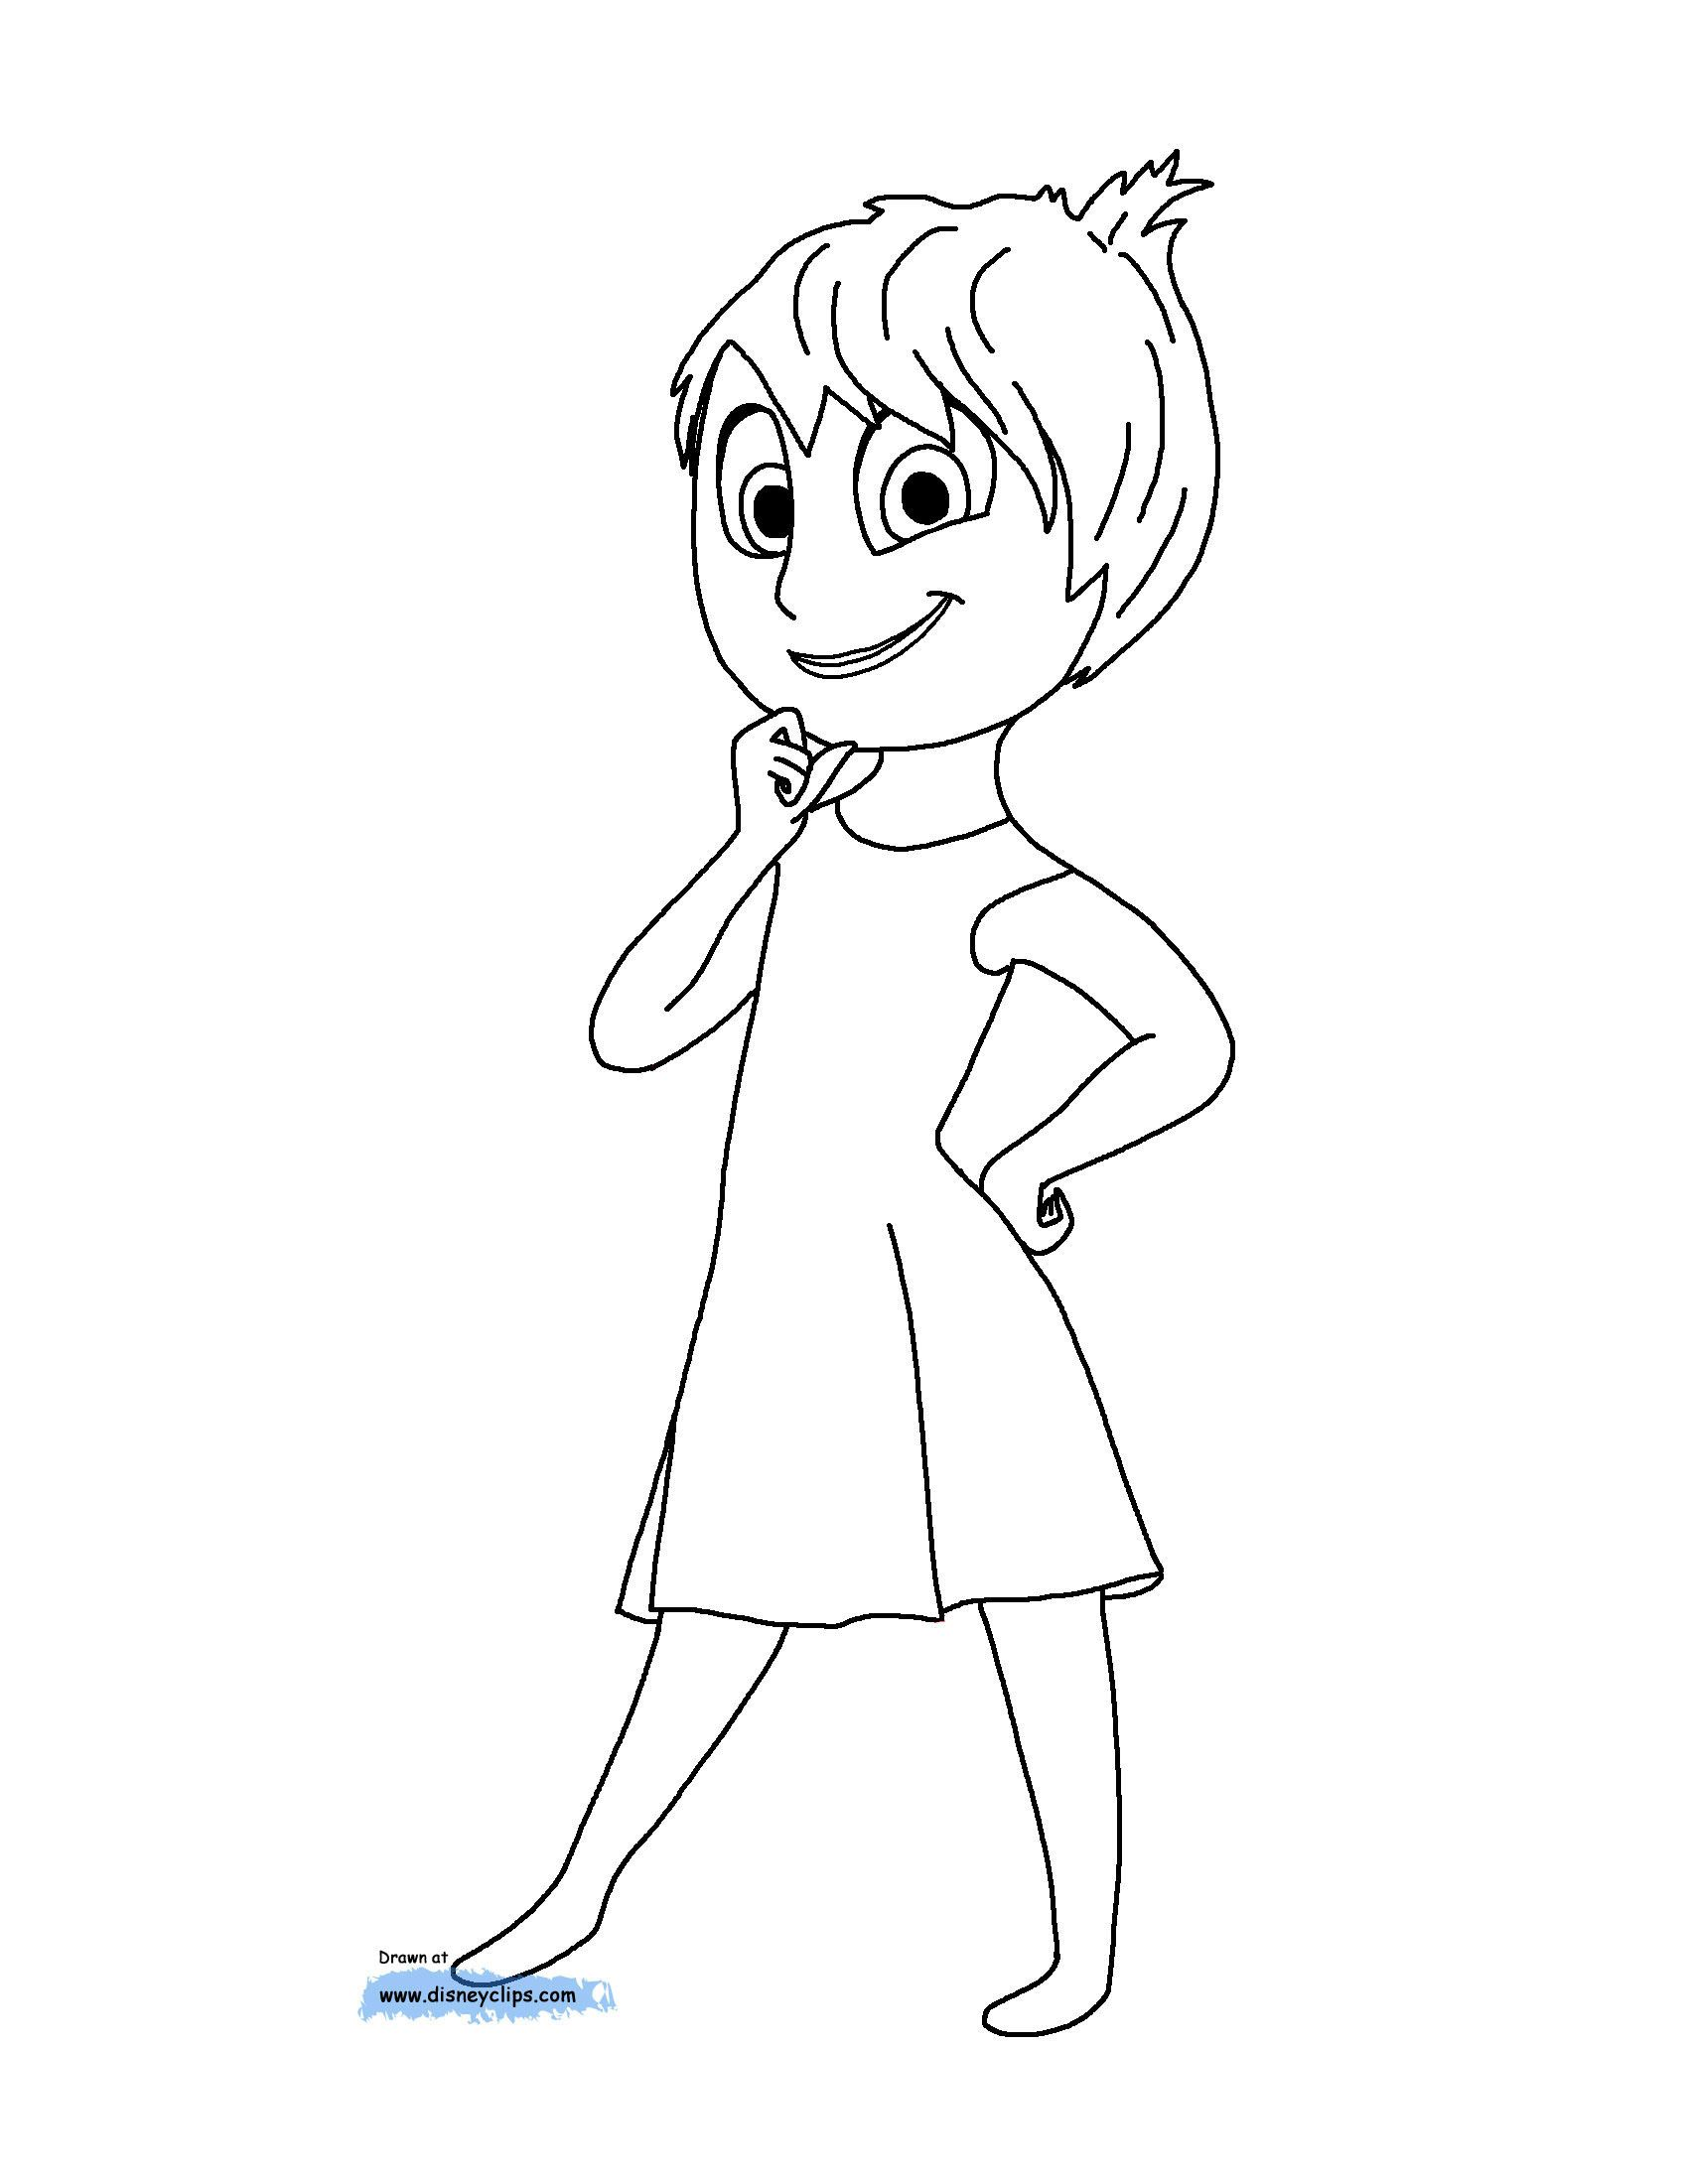 Disney S Inside Out Movie Coloring Pages Create Play Travel Inside Out Coloring Pages Disney Coloring Pages Coloring Pages